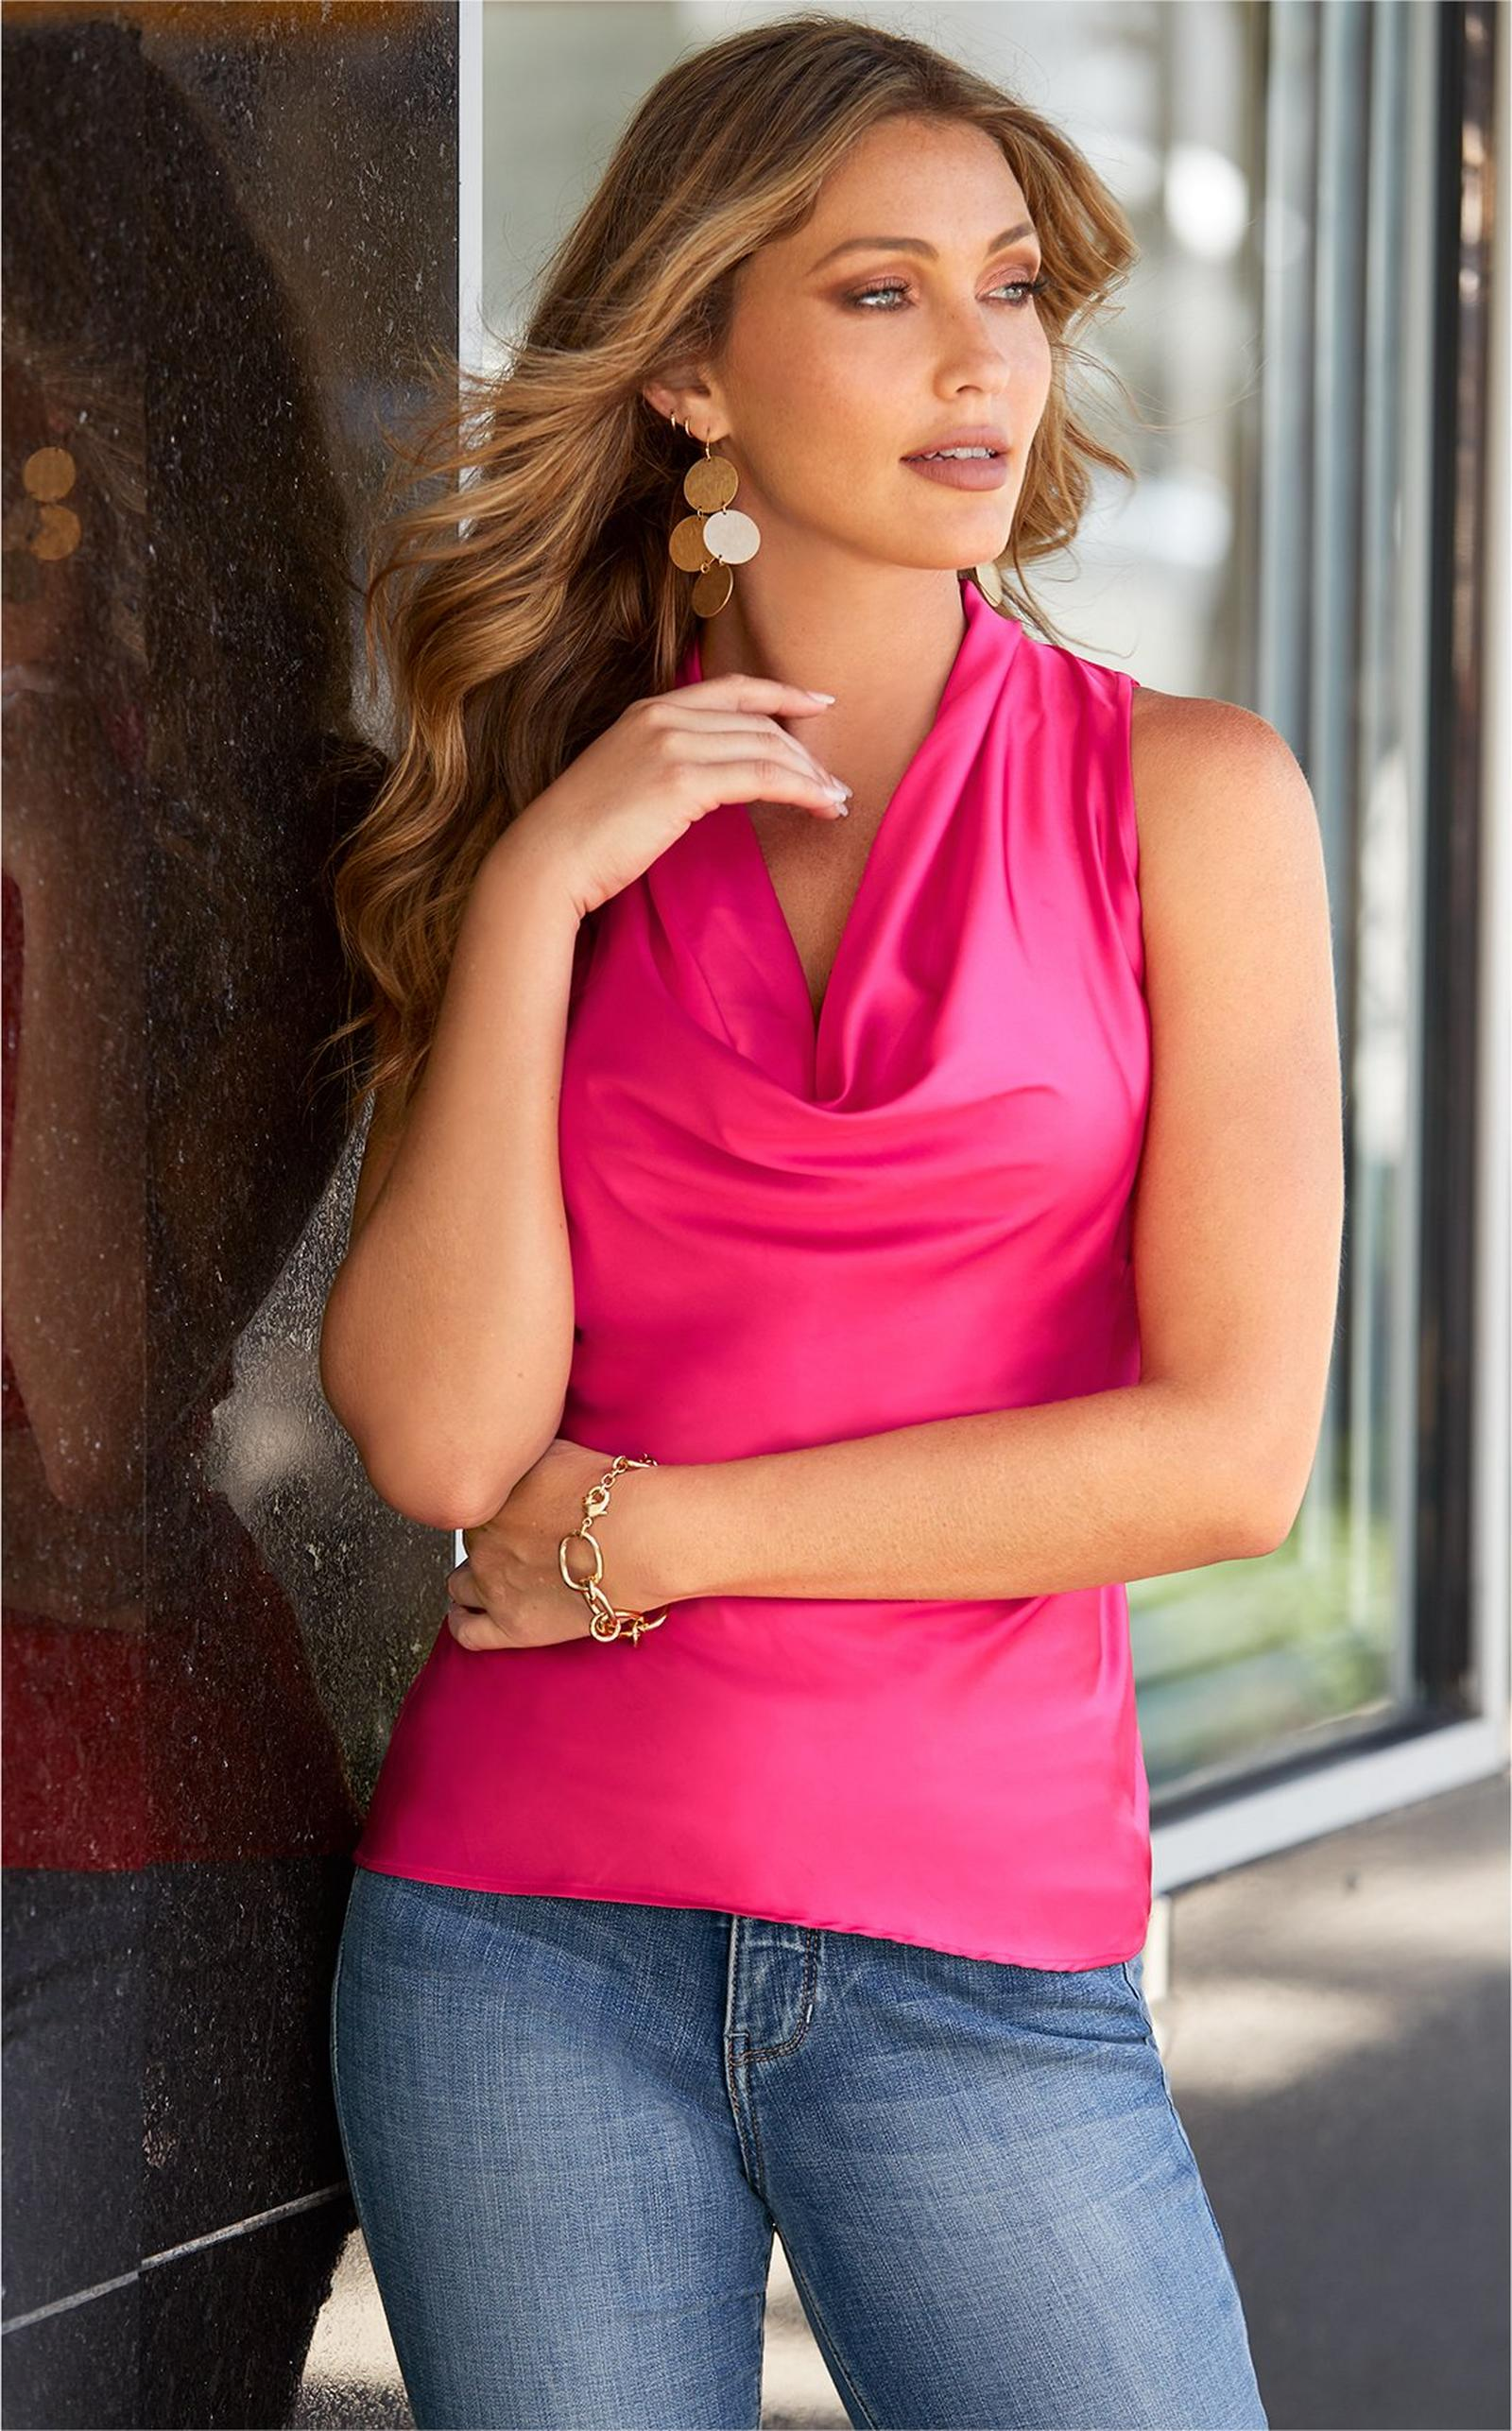 model wearing hot pink cowl neck tank top with light jeans and gold earrings.